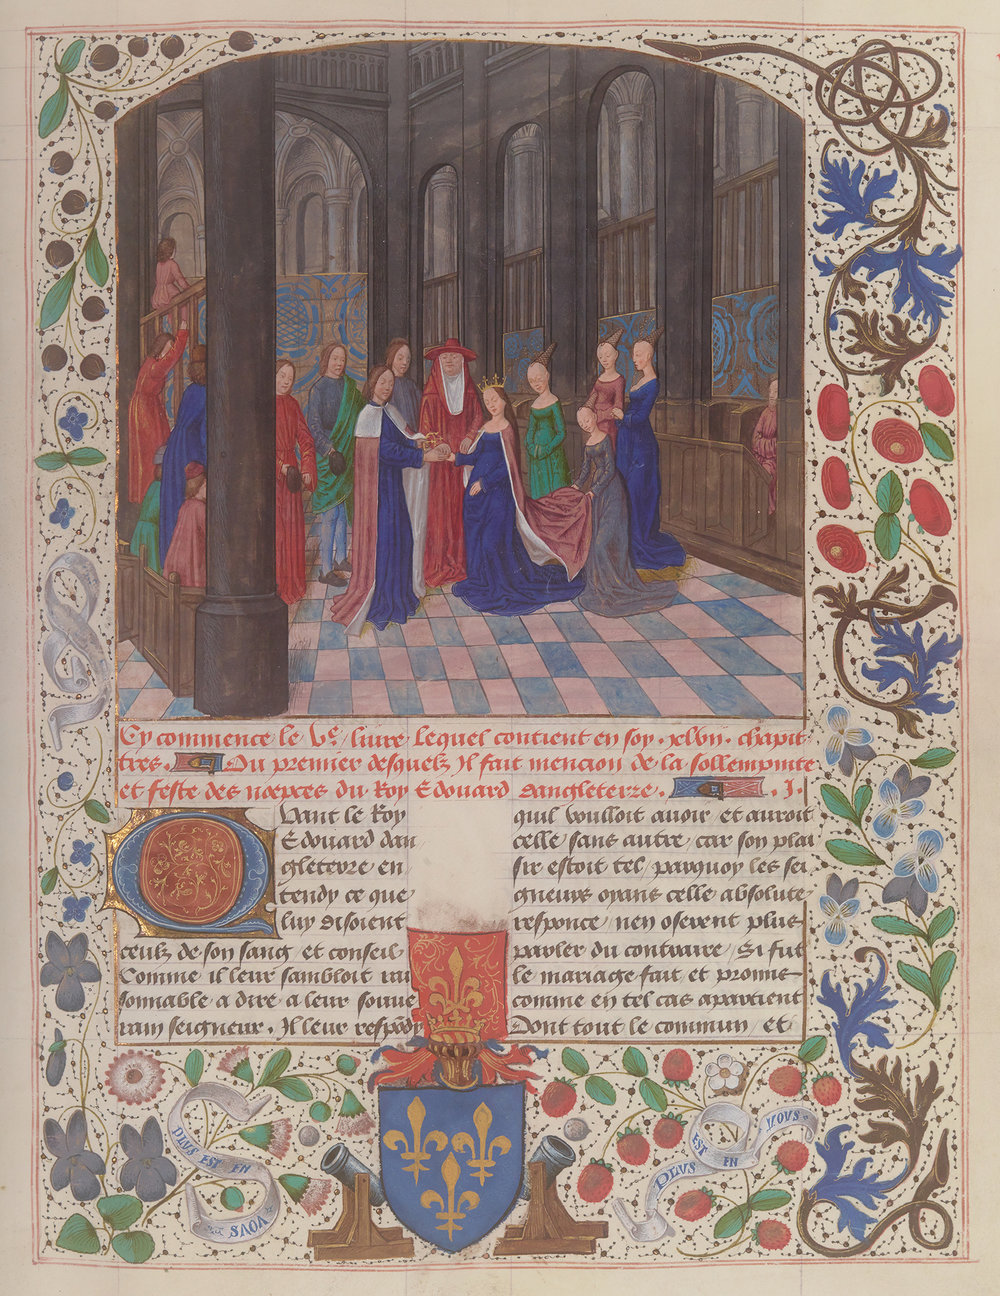 Marriage_Edward_IV_Elizabeth_Woodville_Wavrin_Anciennes_Chroniques_d'Angleterre_Francais_85_f109_web.jpg